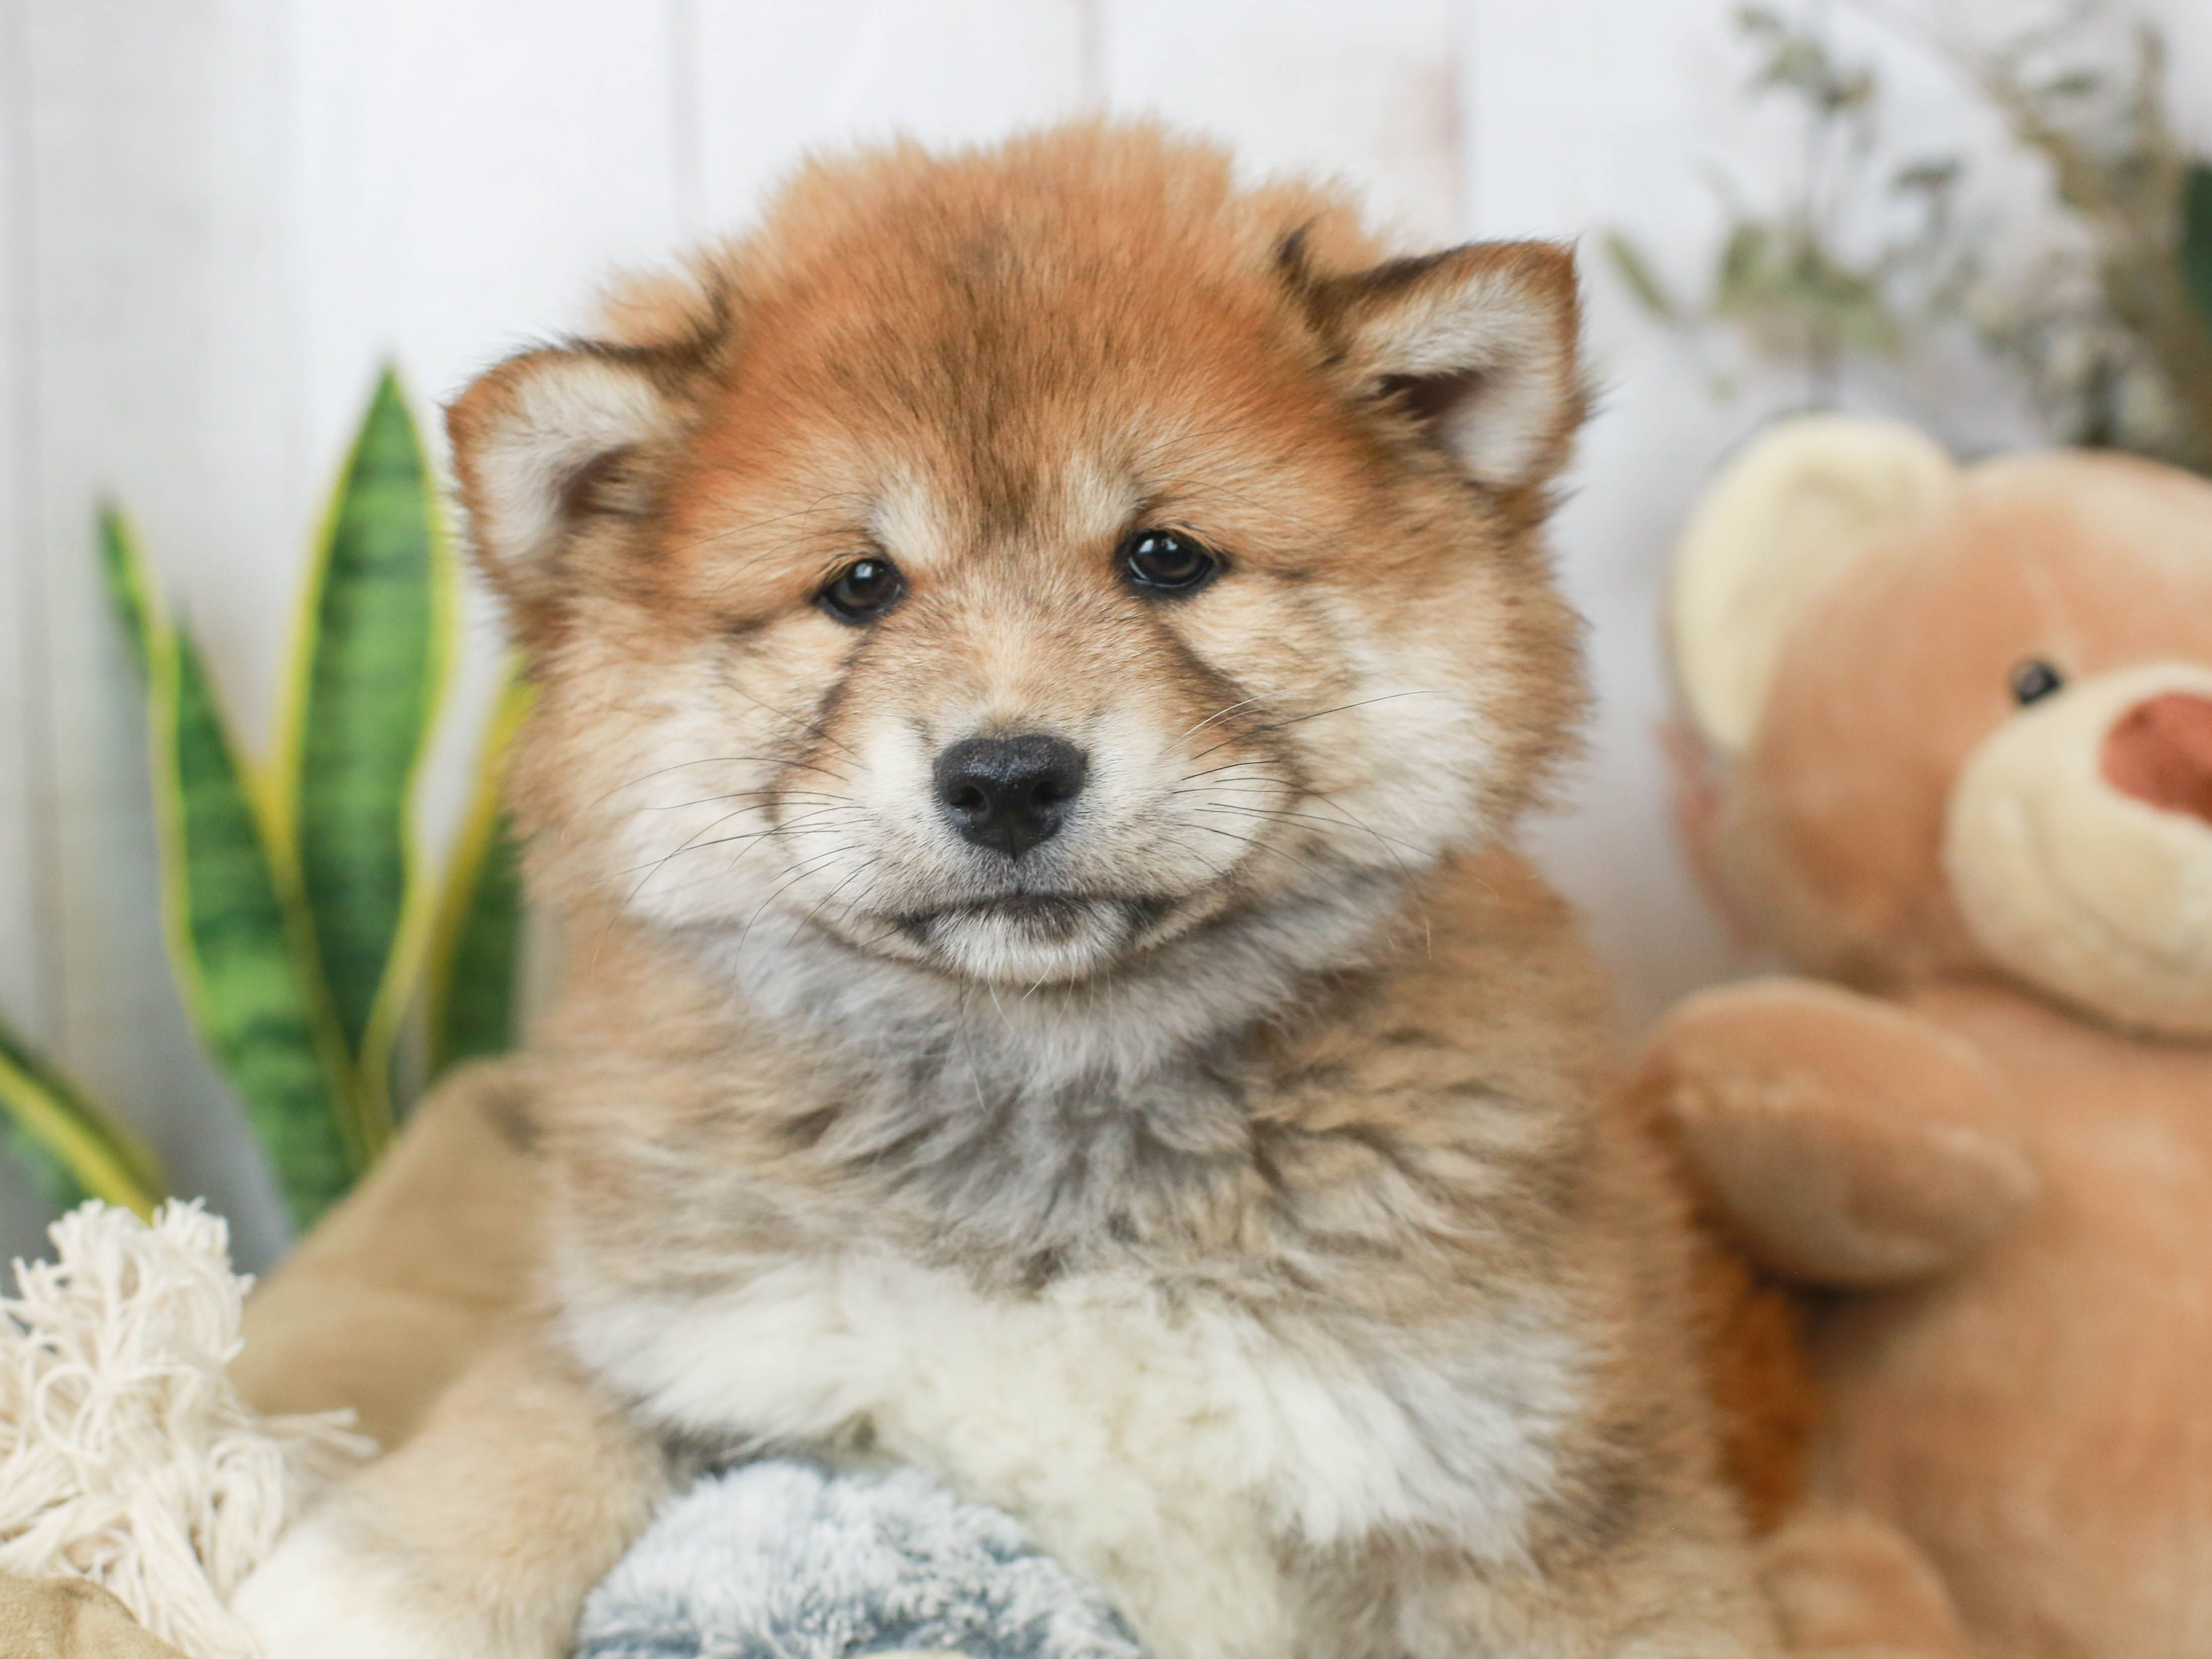 This Is The Fluffiest Shiba Inu Puppy We Ve Ever Seen He Looks Like He Has Bedhead Shiba Inus Are Very Independent Intelli In 2020 Shiba Inu Puppy Puppies Shiba Inu